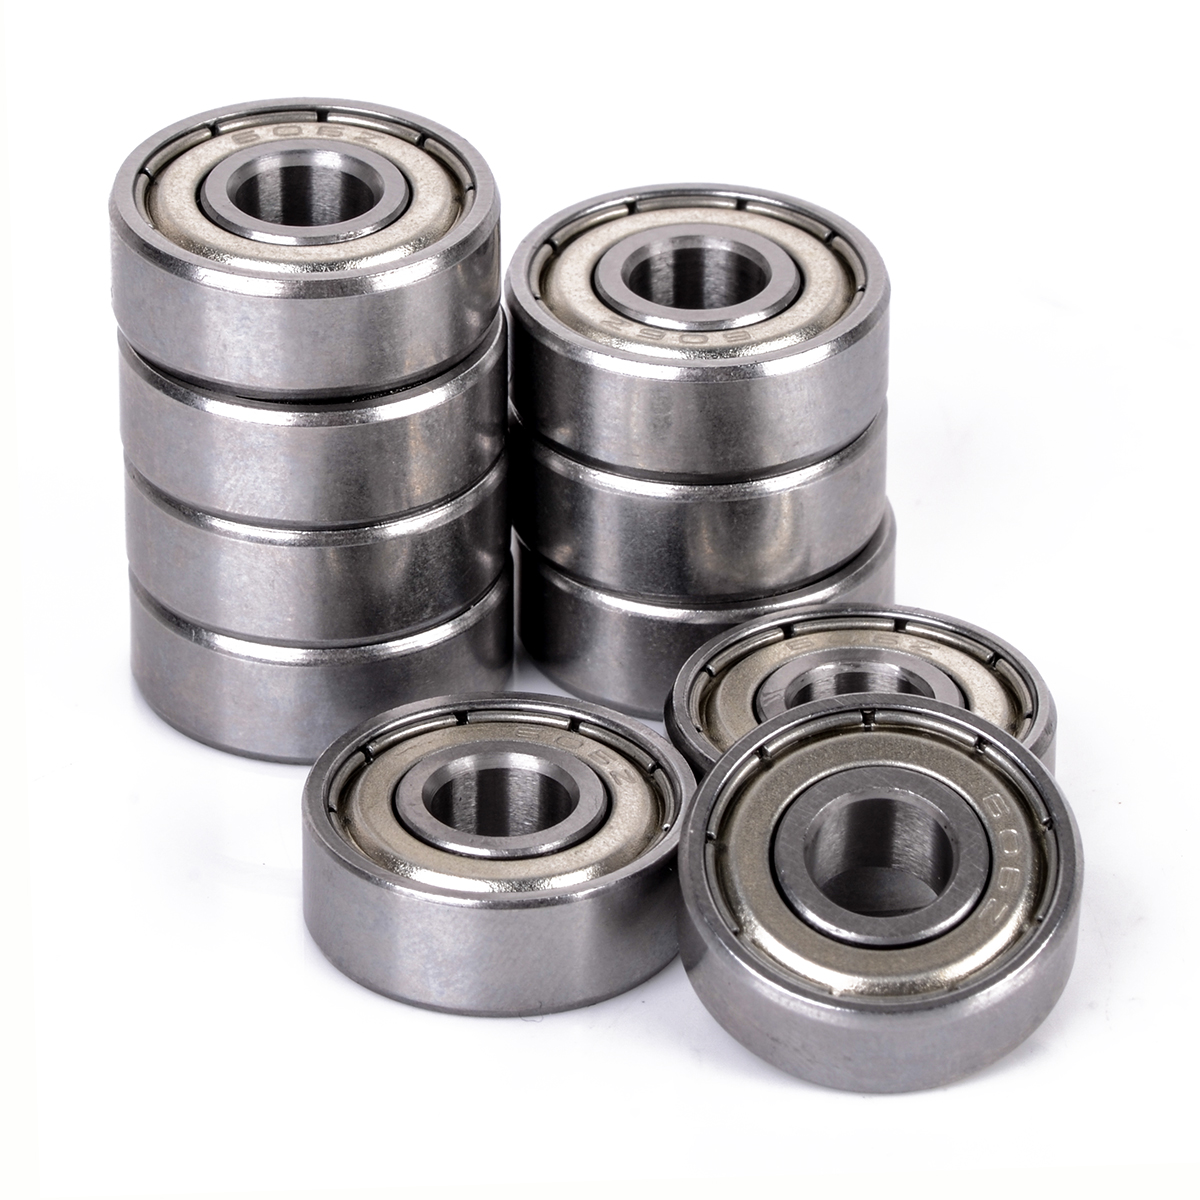 10pcs/lot 606 ZZ Miniature Ball Bearings Metal Deep Groove Shielded Bearings 6x17x6mm For Household Applications купить